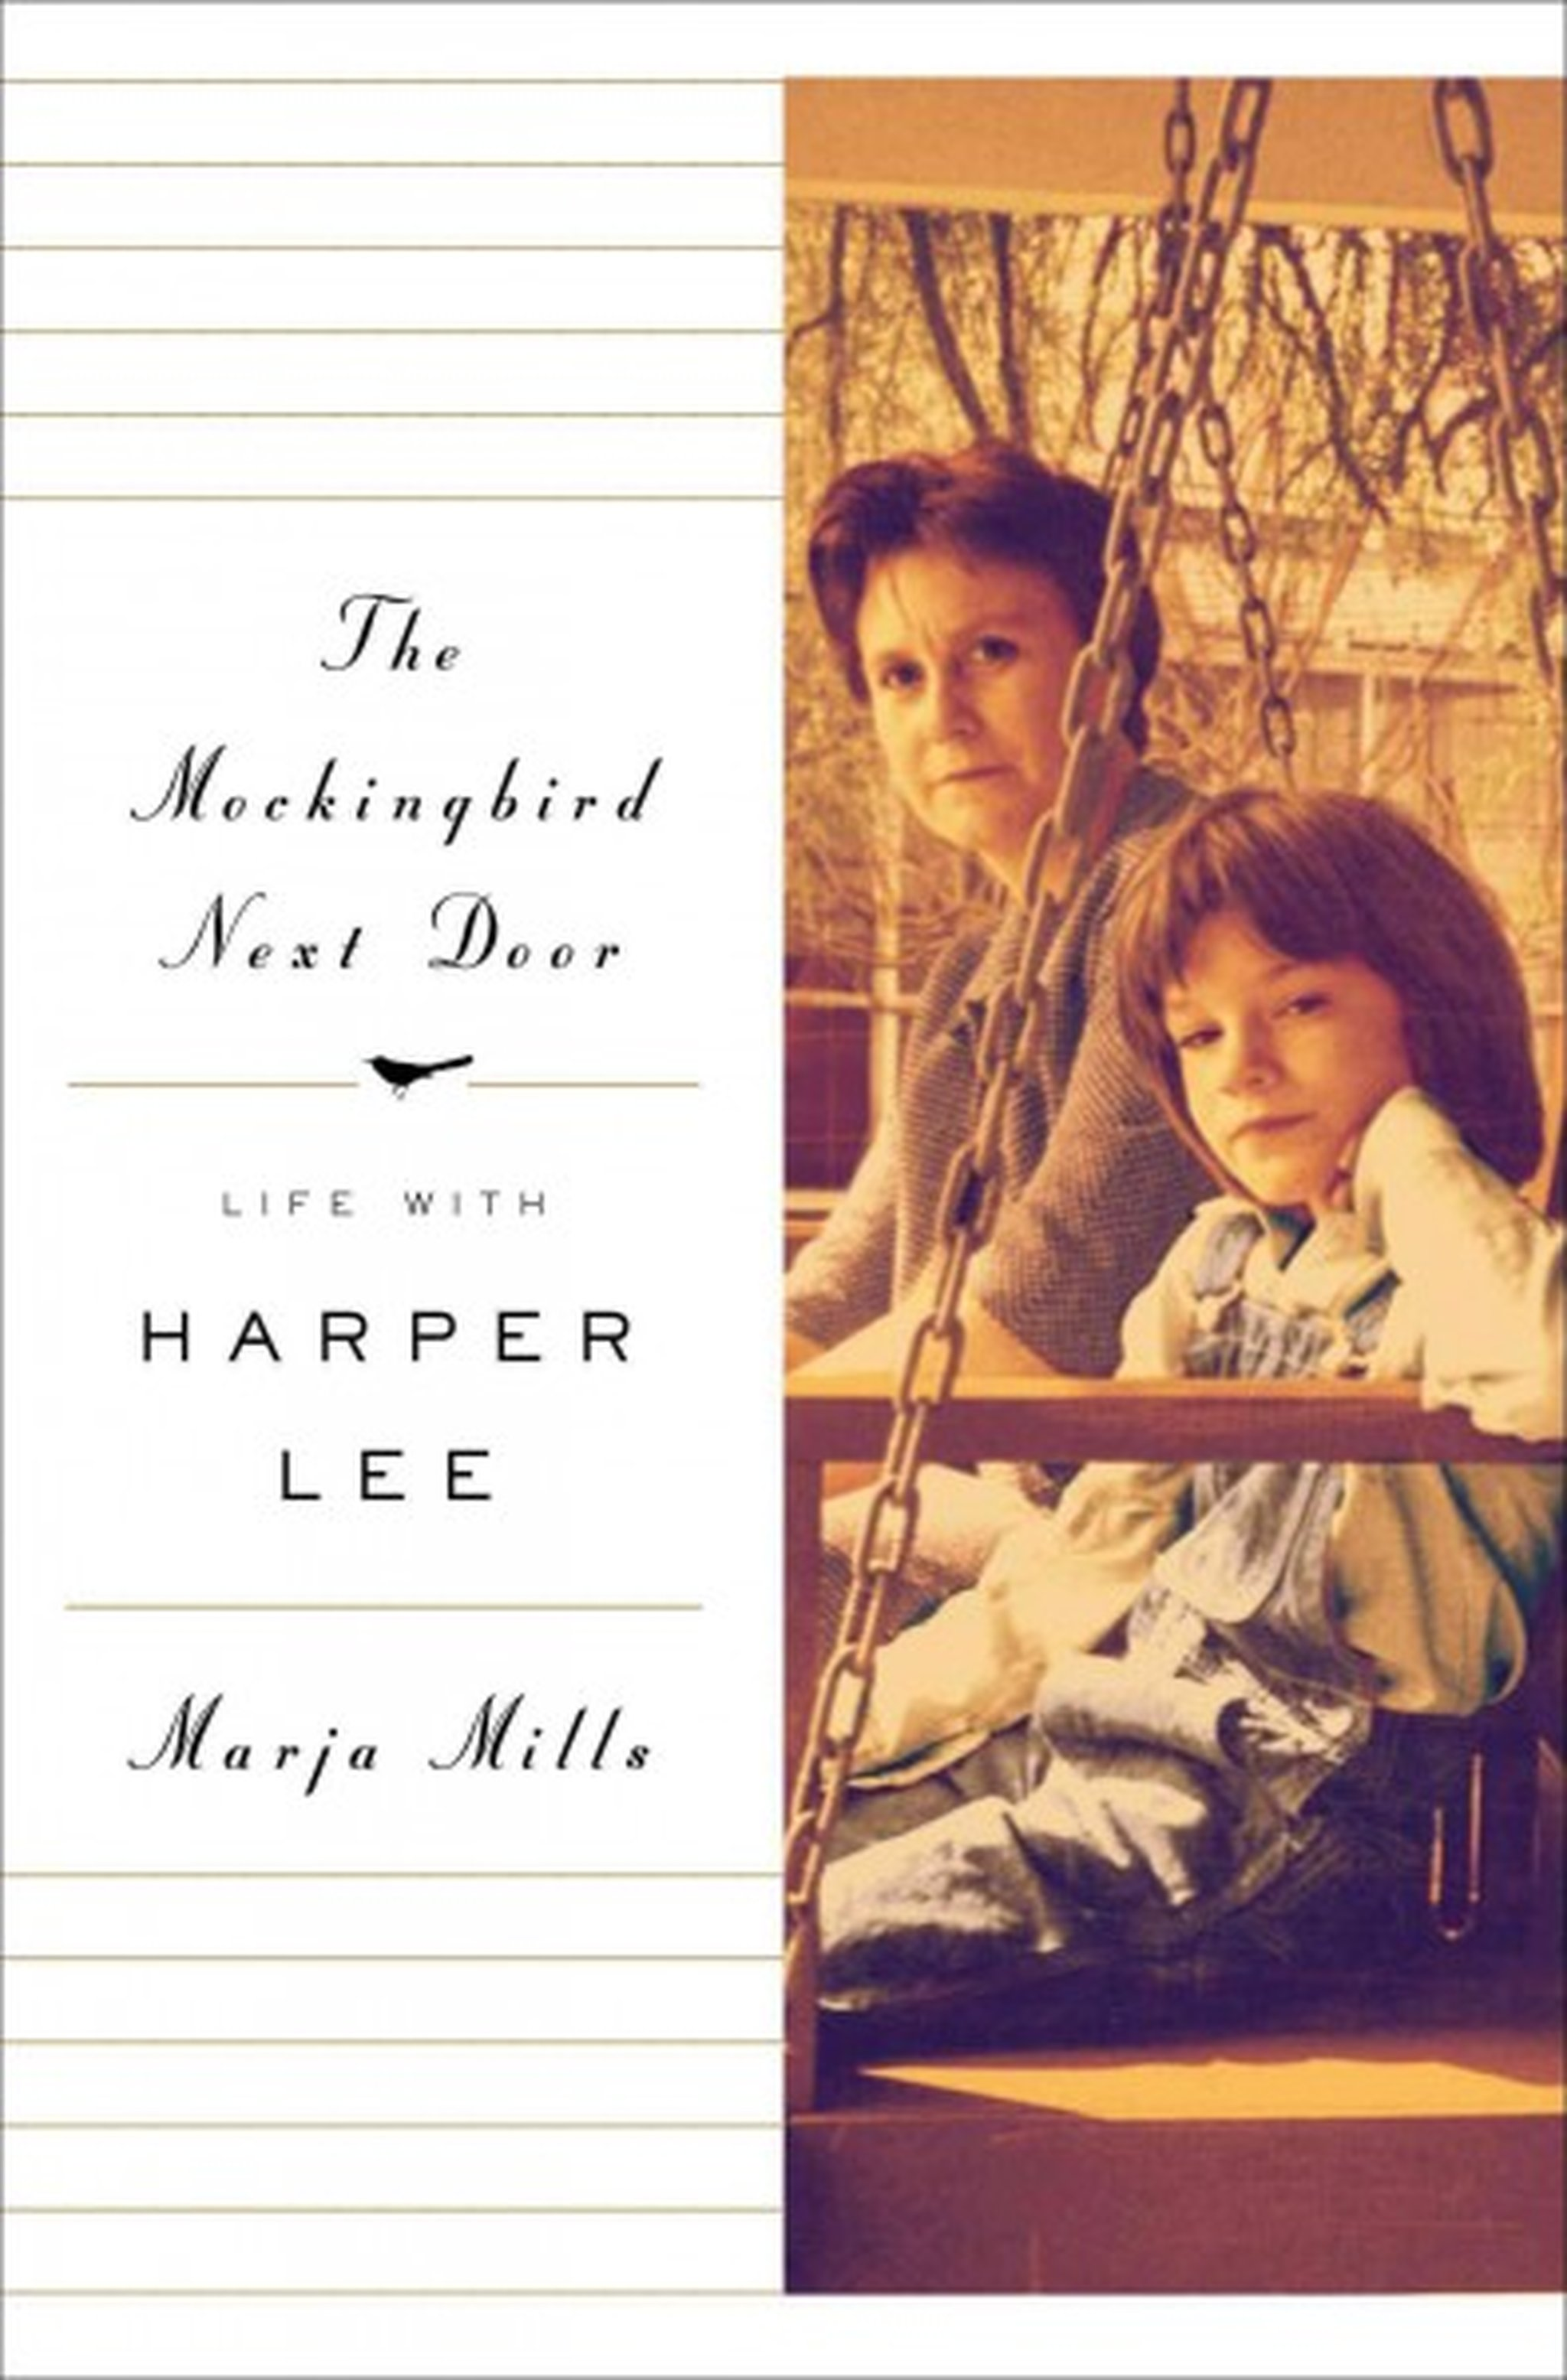 an analysis of the importance of the novel to kill a mockingbird by harper lee As charles j shields recounts in mockingbird: a portrait of harper lee, lee threw watchman an important step books to kill a mockingbird.